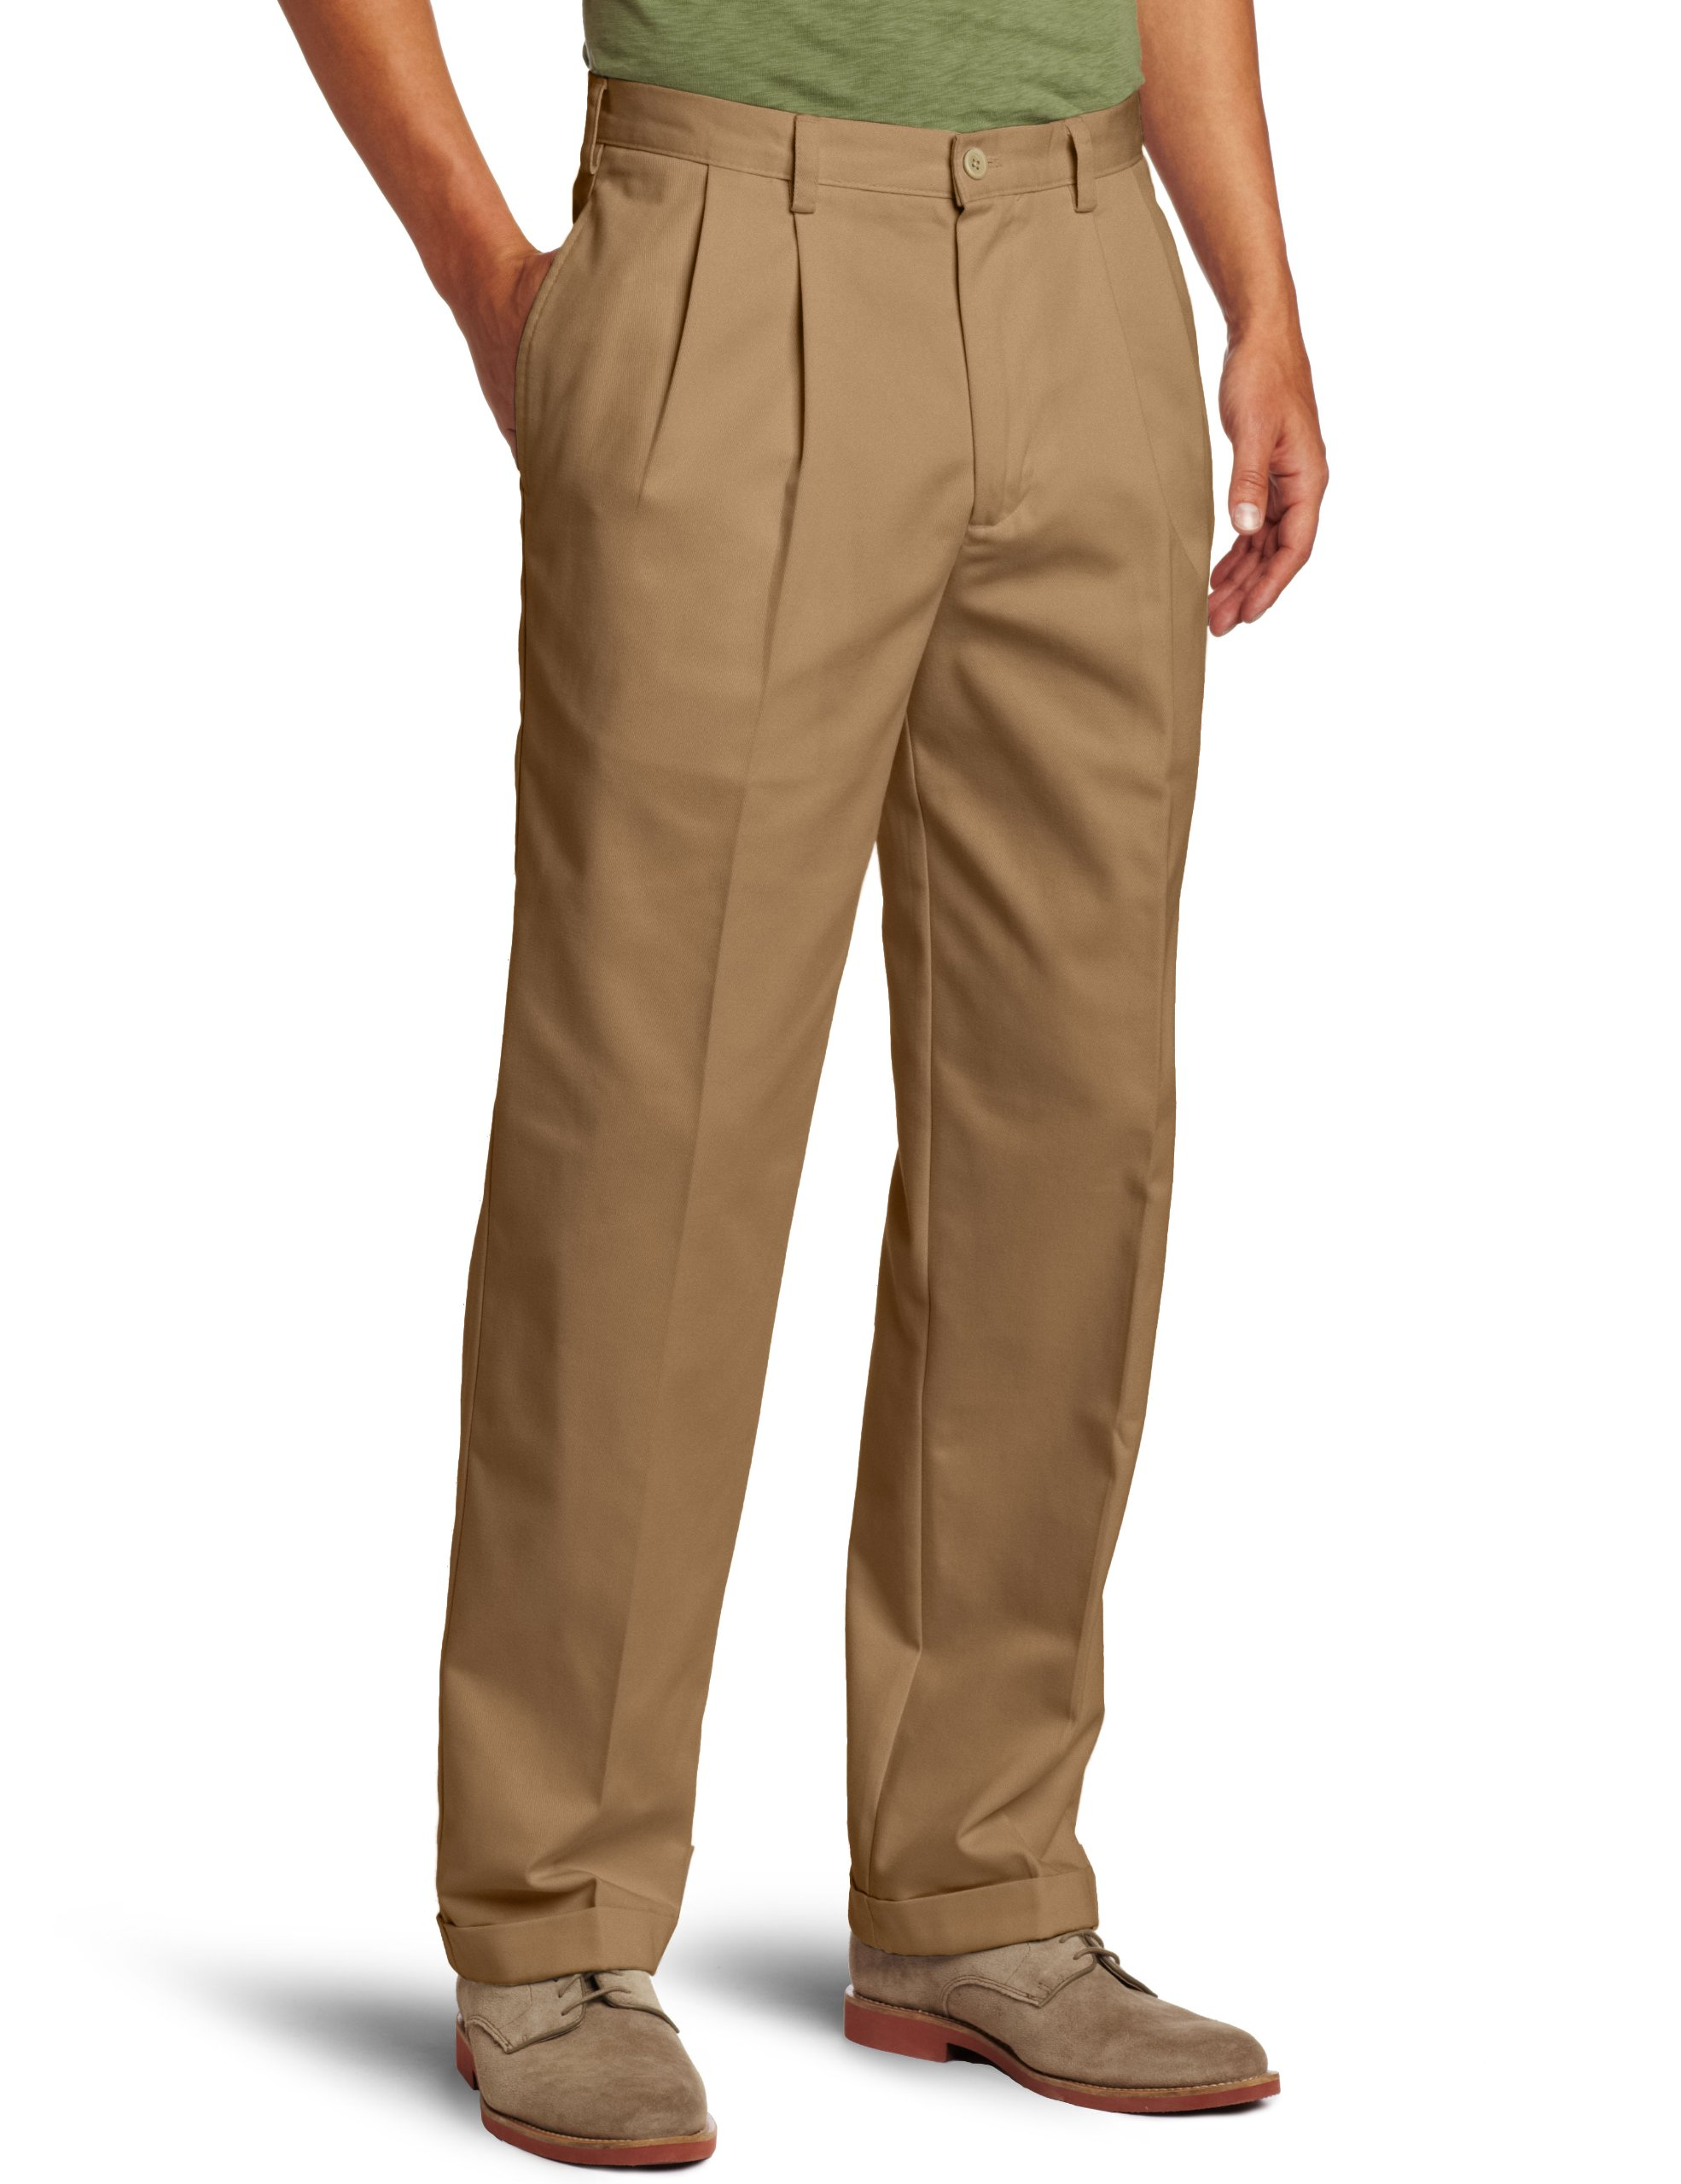 IZOD Men's American Chino Pleated Pant, English Khaki, 35W x 32L